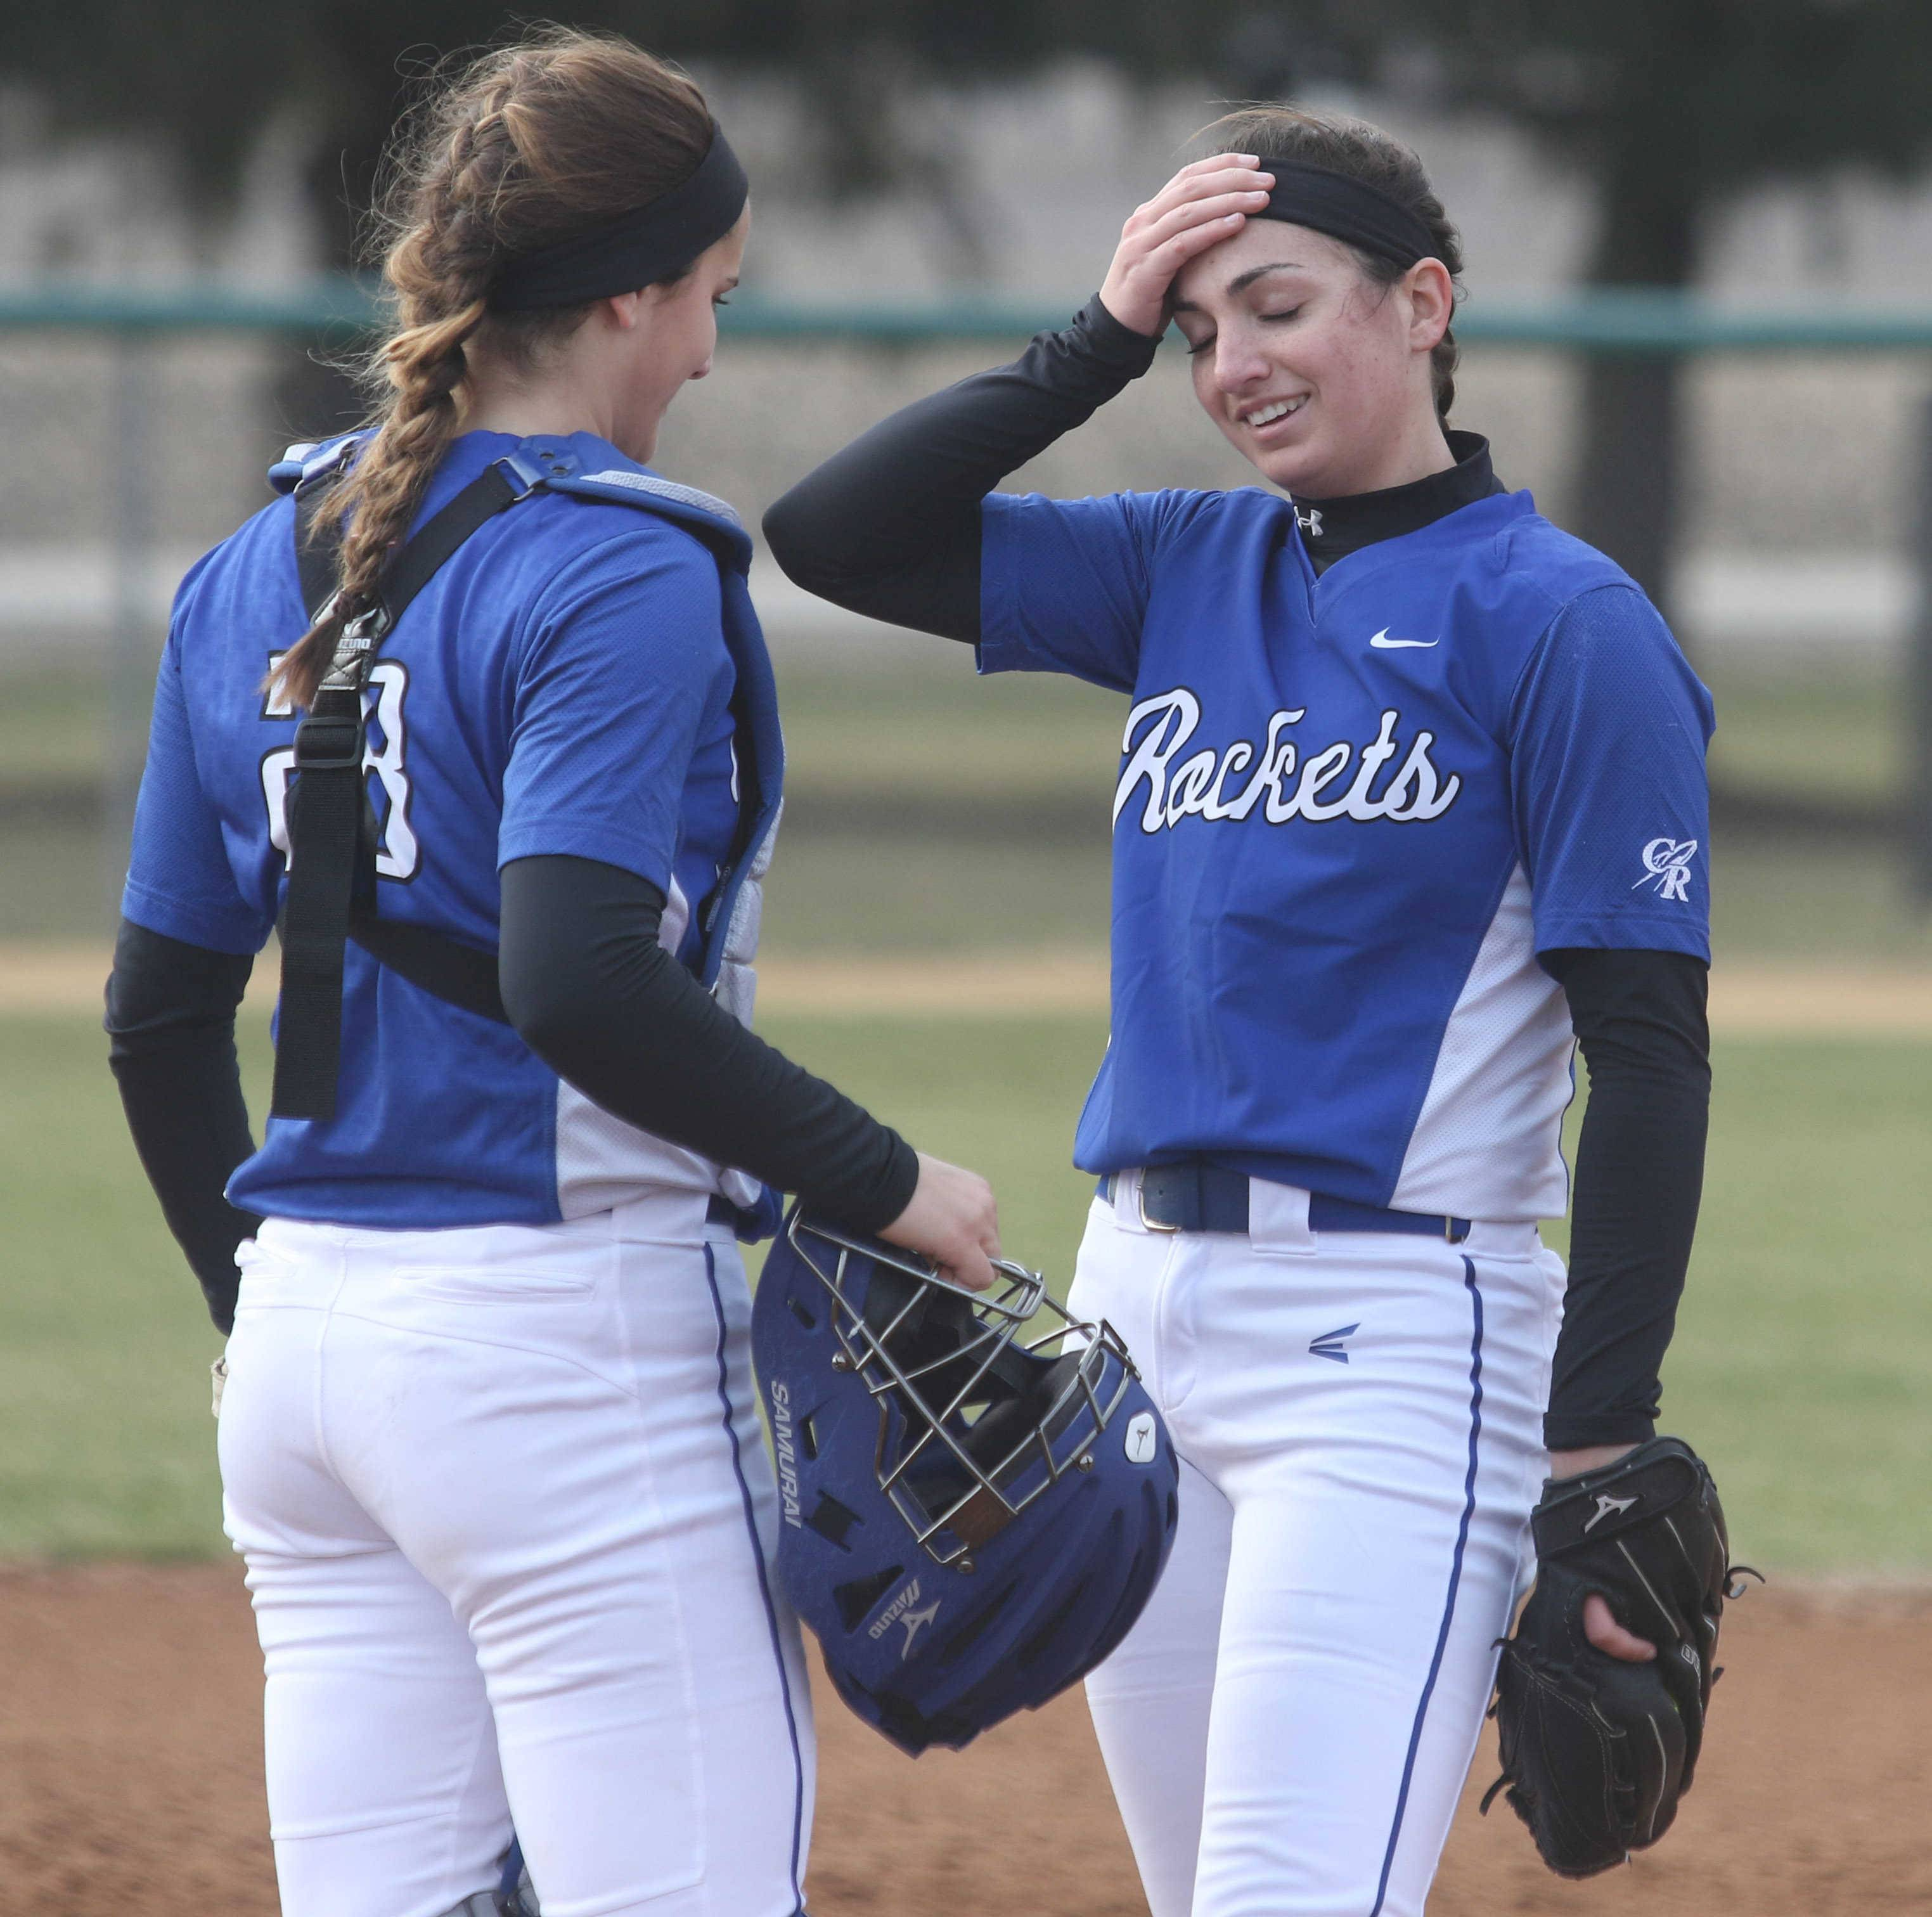 Burlington Central catcher Lindsay Jamrozek, left, meets with pitcher Julia Barnes during varsity softball action at Kaneland Monday night. Barnes earned the win in Kaneland's 4-2 victory while Jamrozek had 3 hits and 4 RBI.